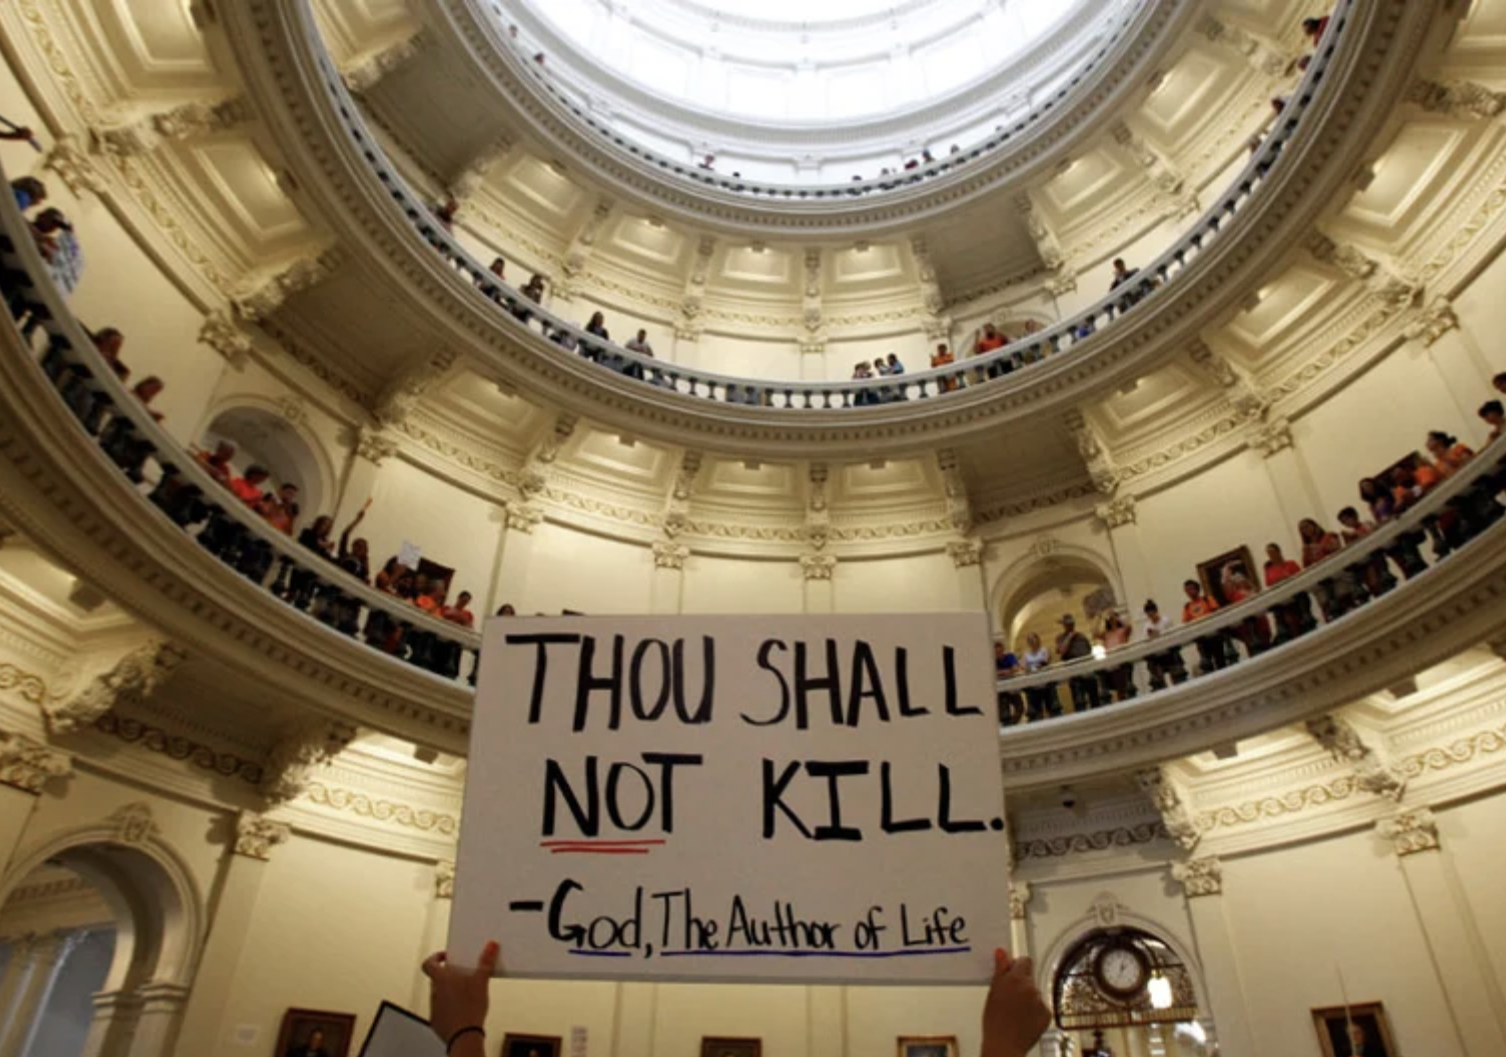 Texas pro-life group evacuated by police over bomb threat, suspicious package